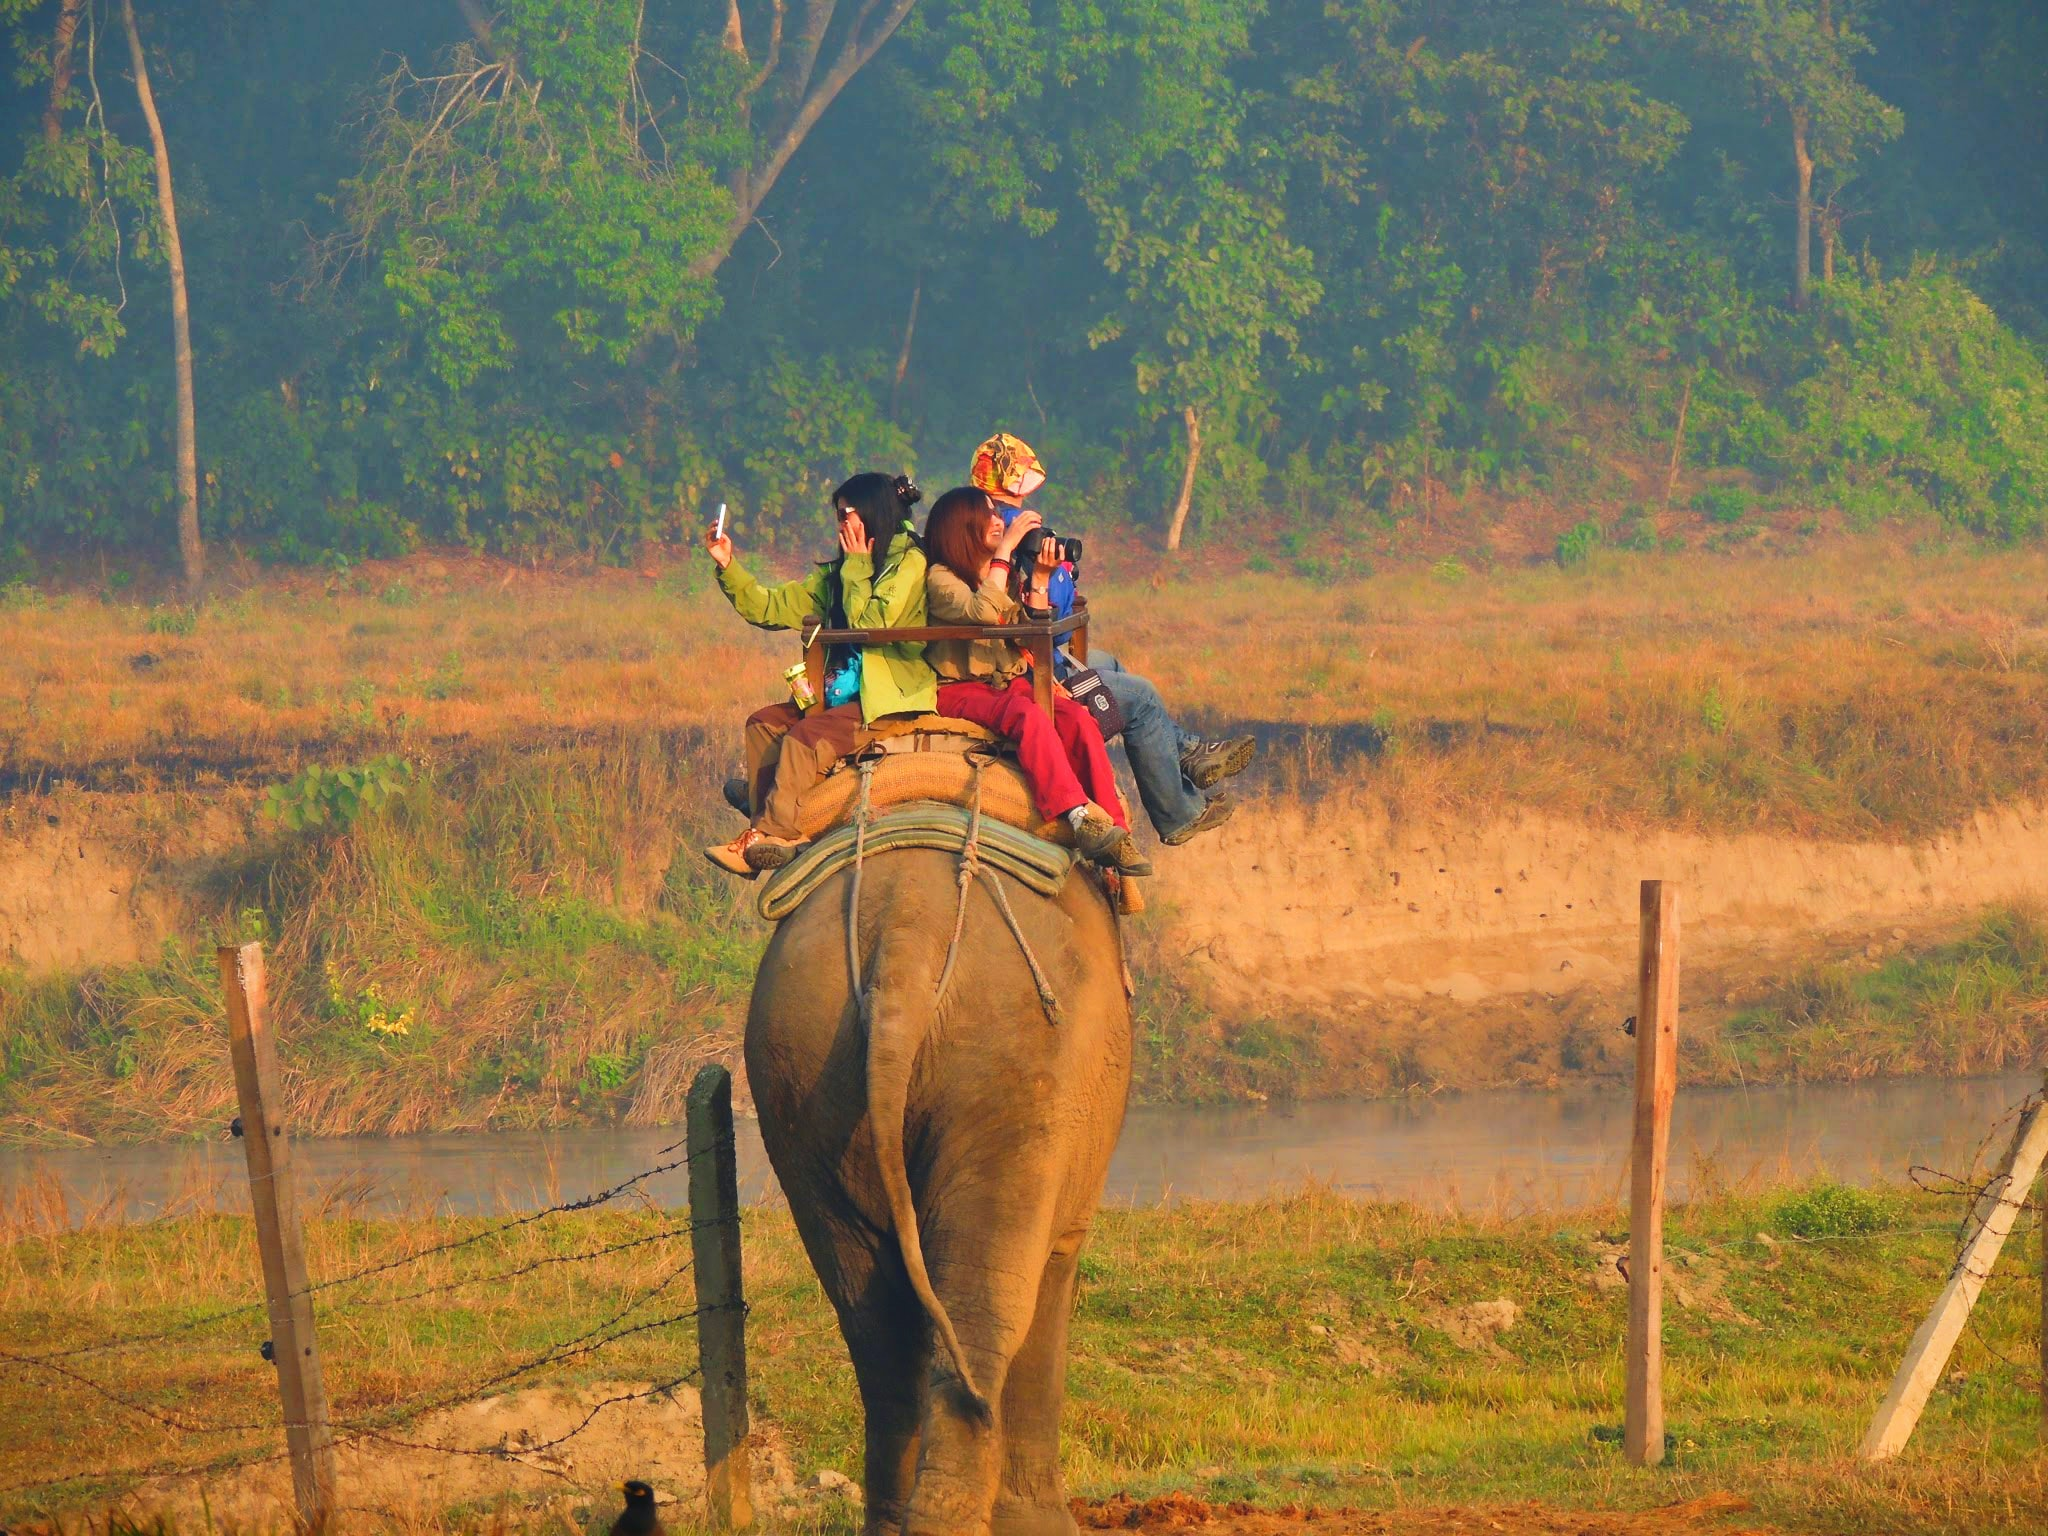 An elephant walking through a farm field while carrying tourists at Chitwan National Park